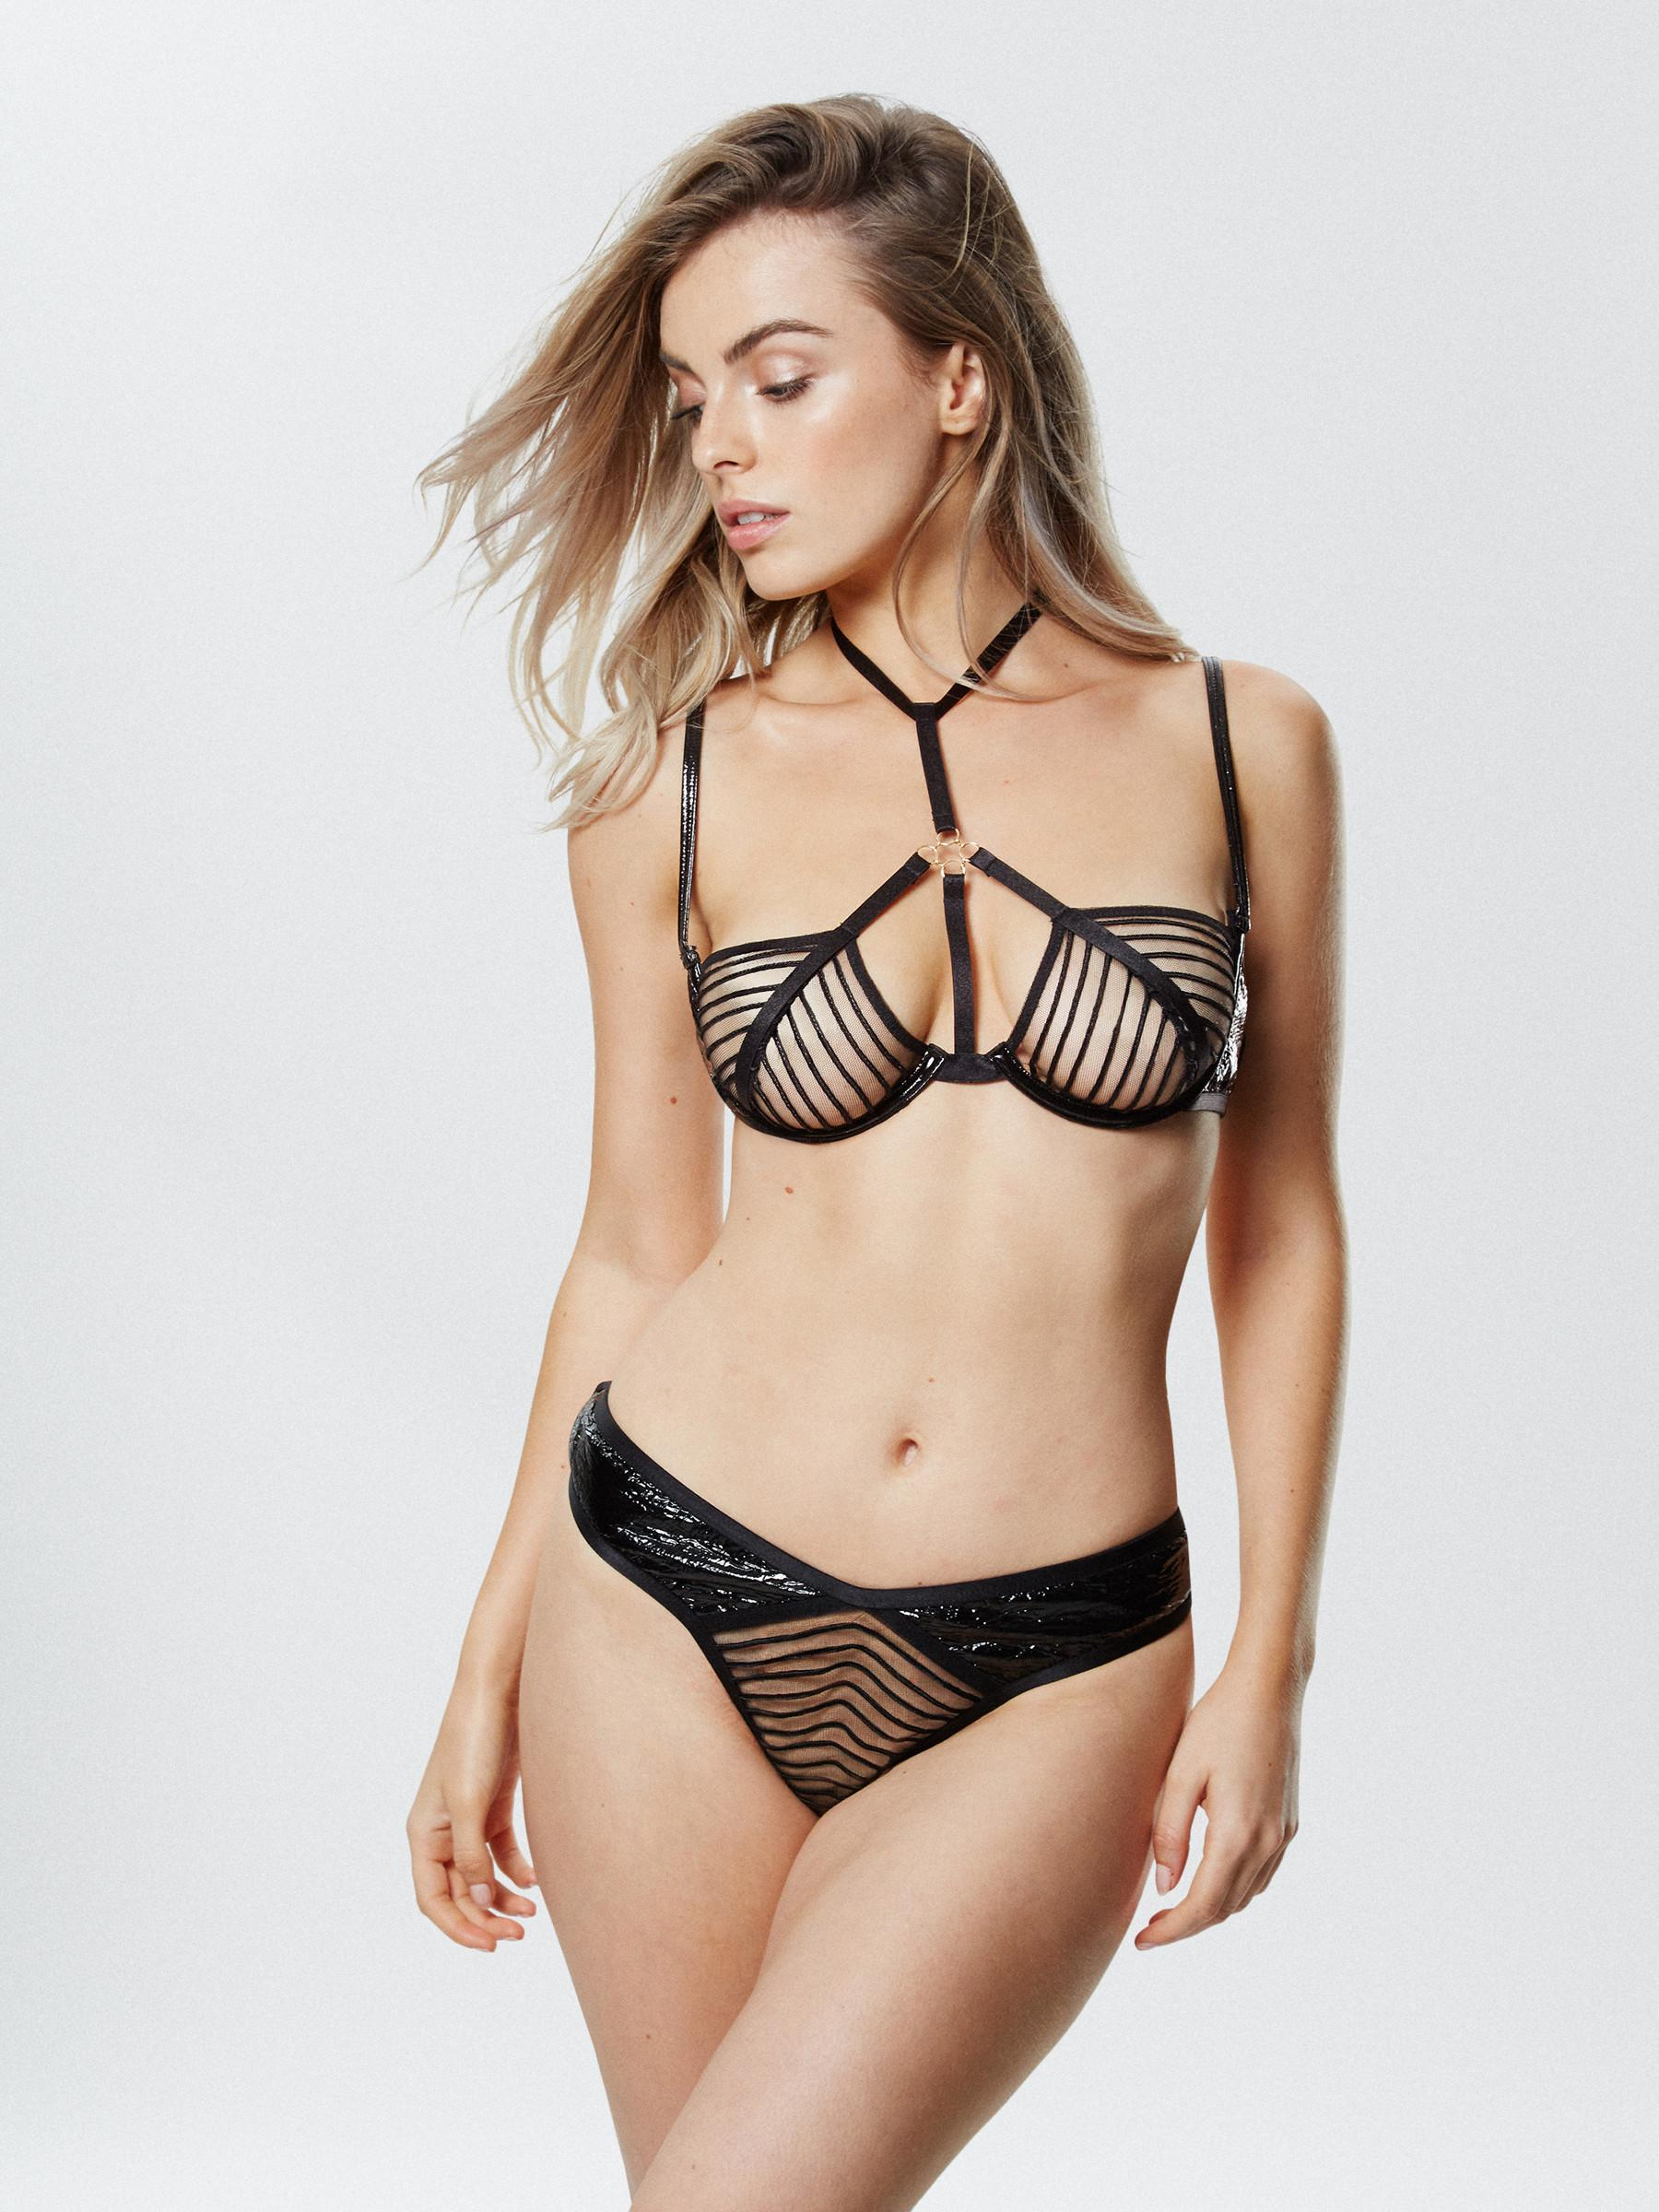 c690687661 Details about Ann Summers Womens Kleo Non Padded Bra Mesh Harness Sexy  Lingerie Underwear